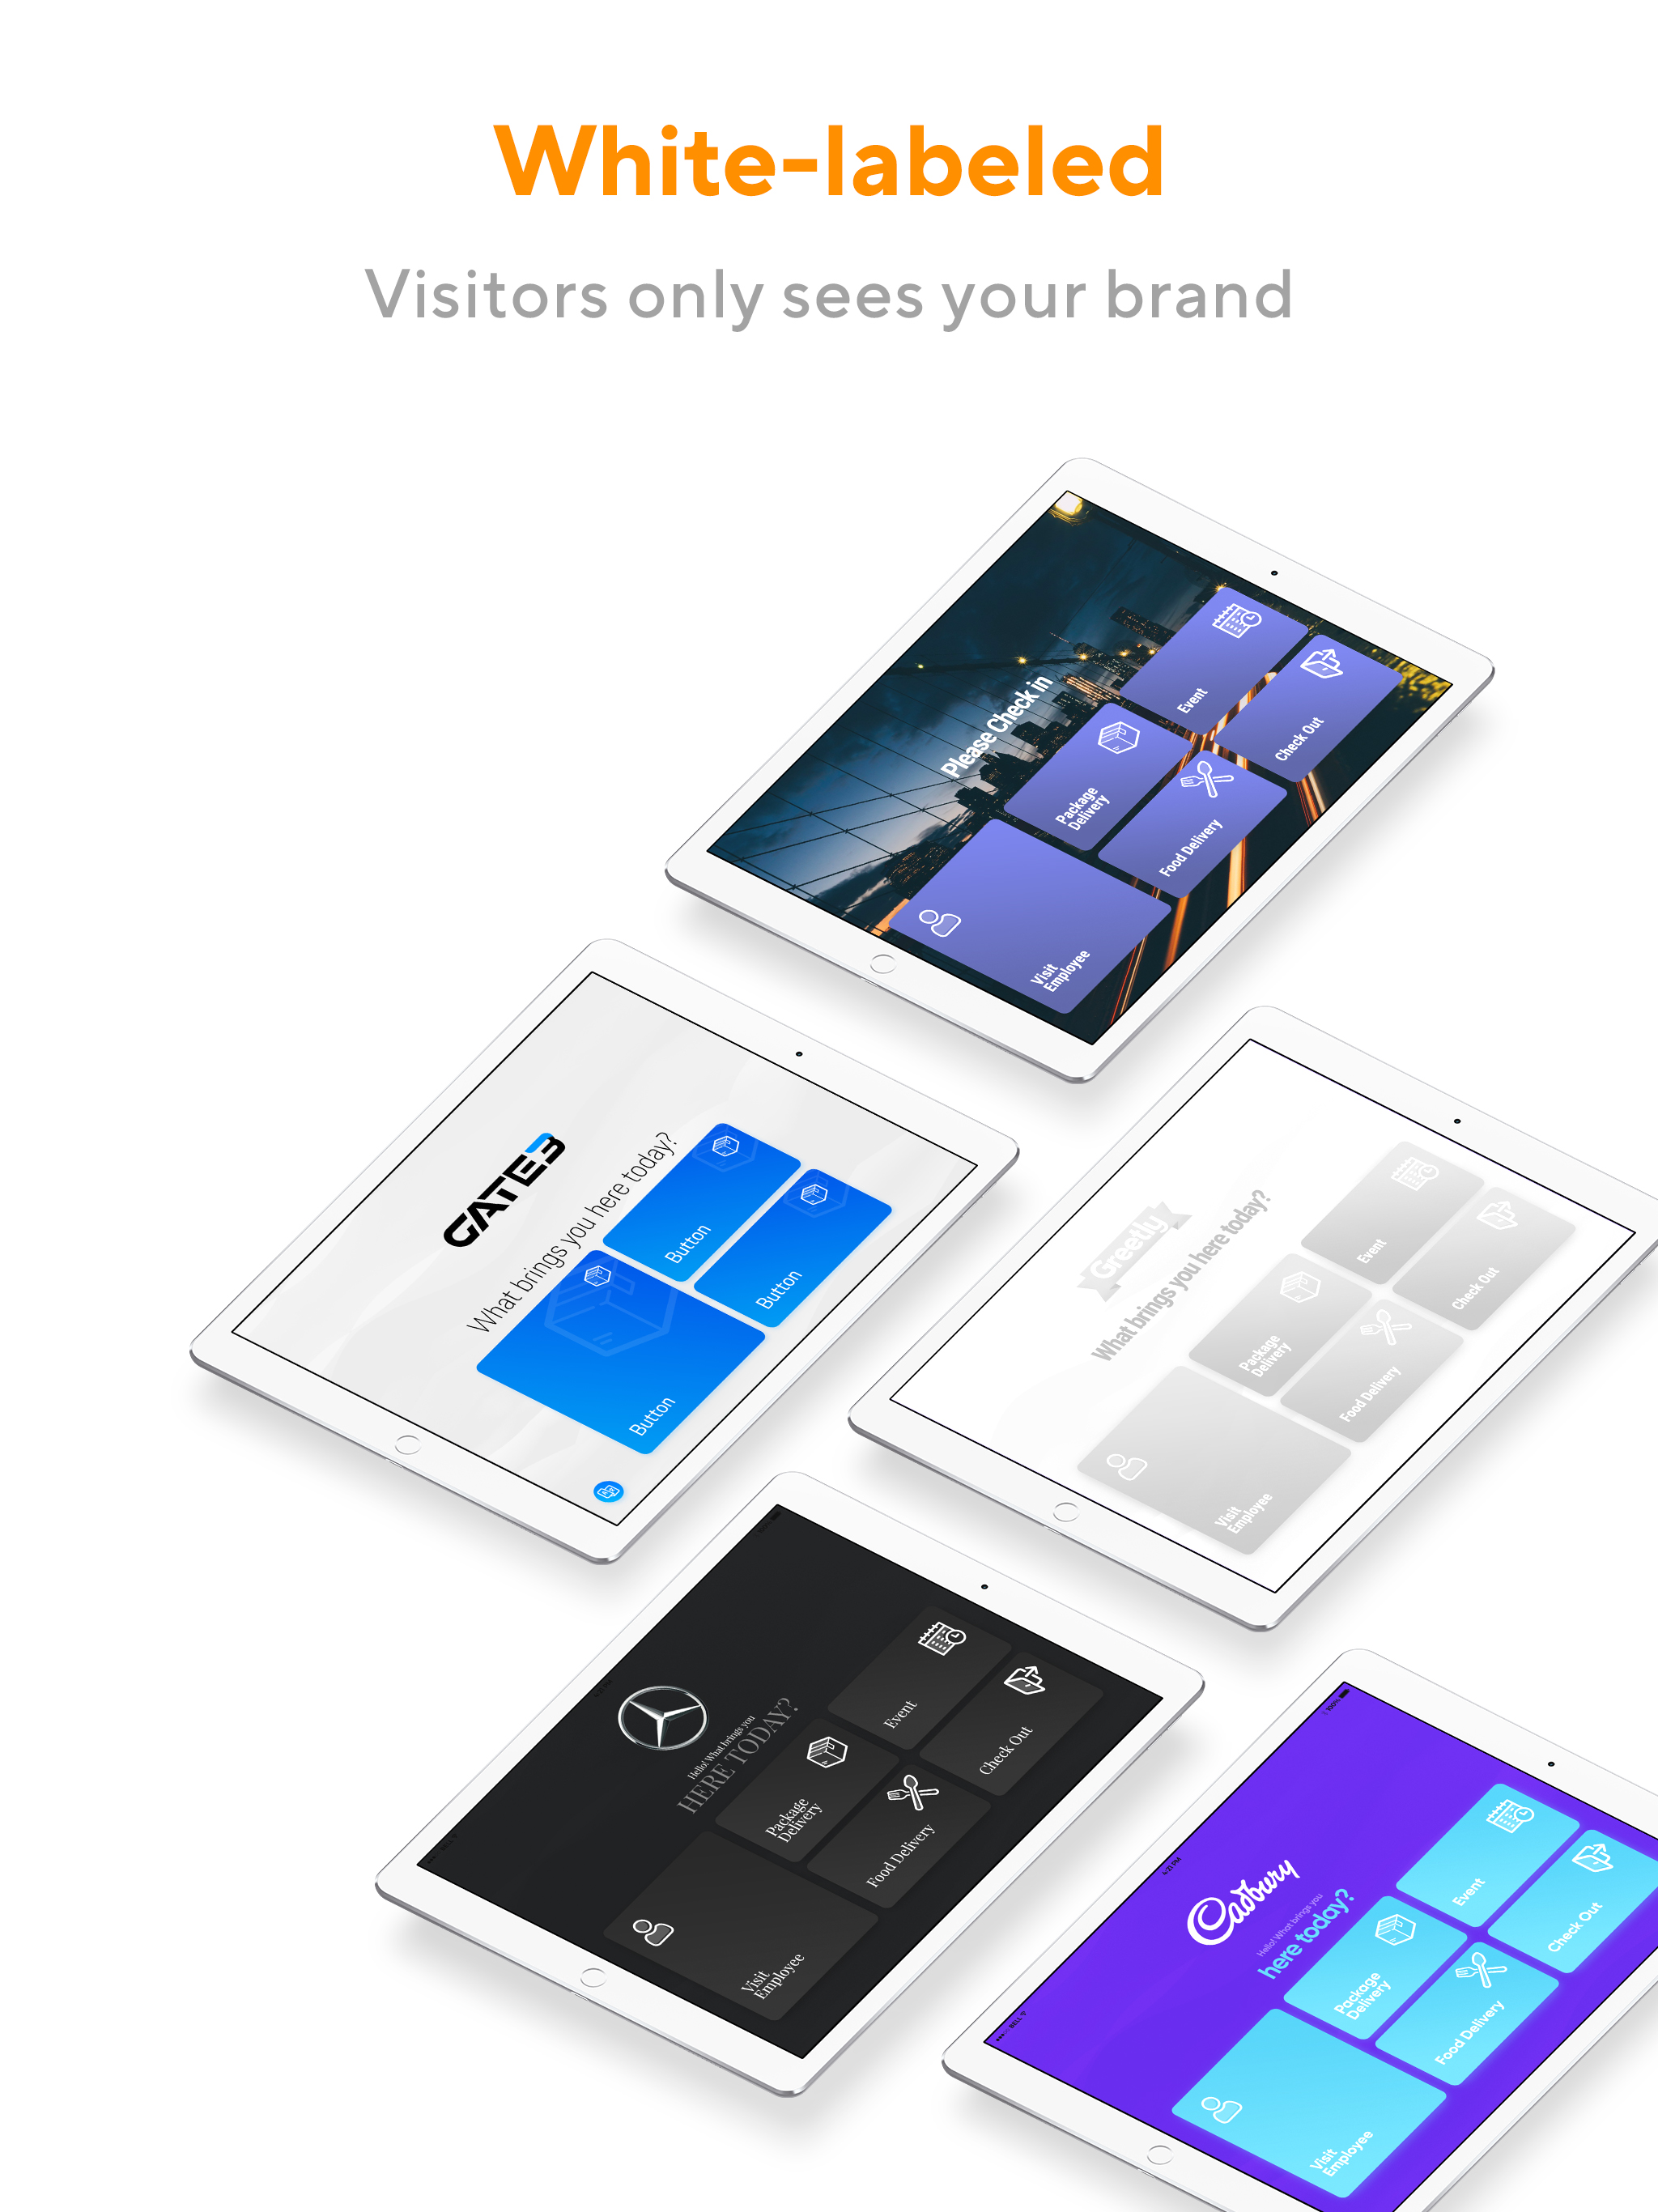 Greetly's visitor interface is 100% white-labeled. Customize Greetly to perfectly fit your brand and reception needs. Setup takes minutes and requires no technical skills. Plus, take visitor photos, print visitor badges & capture eSignatures on your NDA.